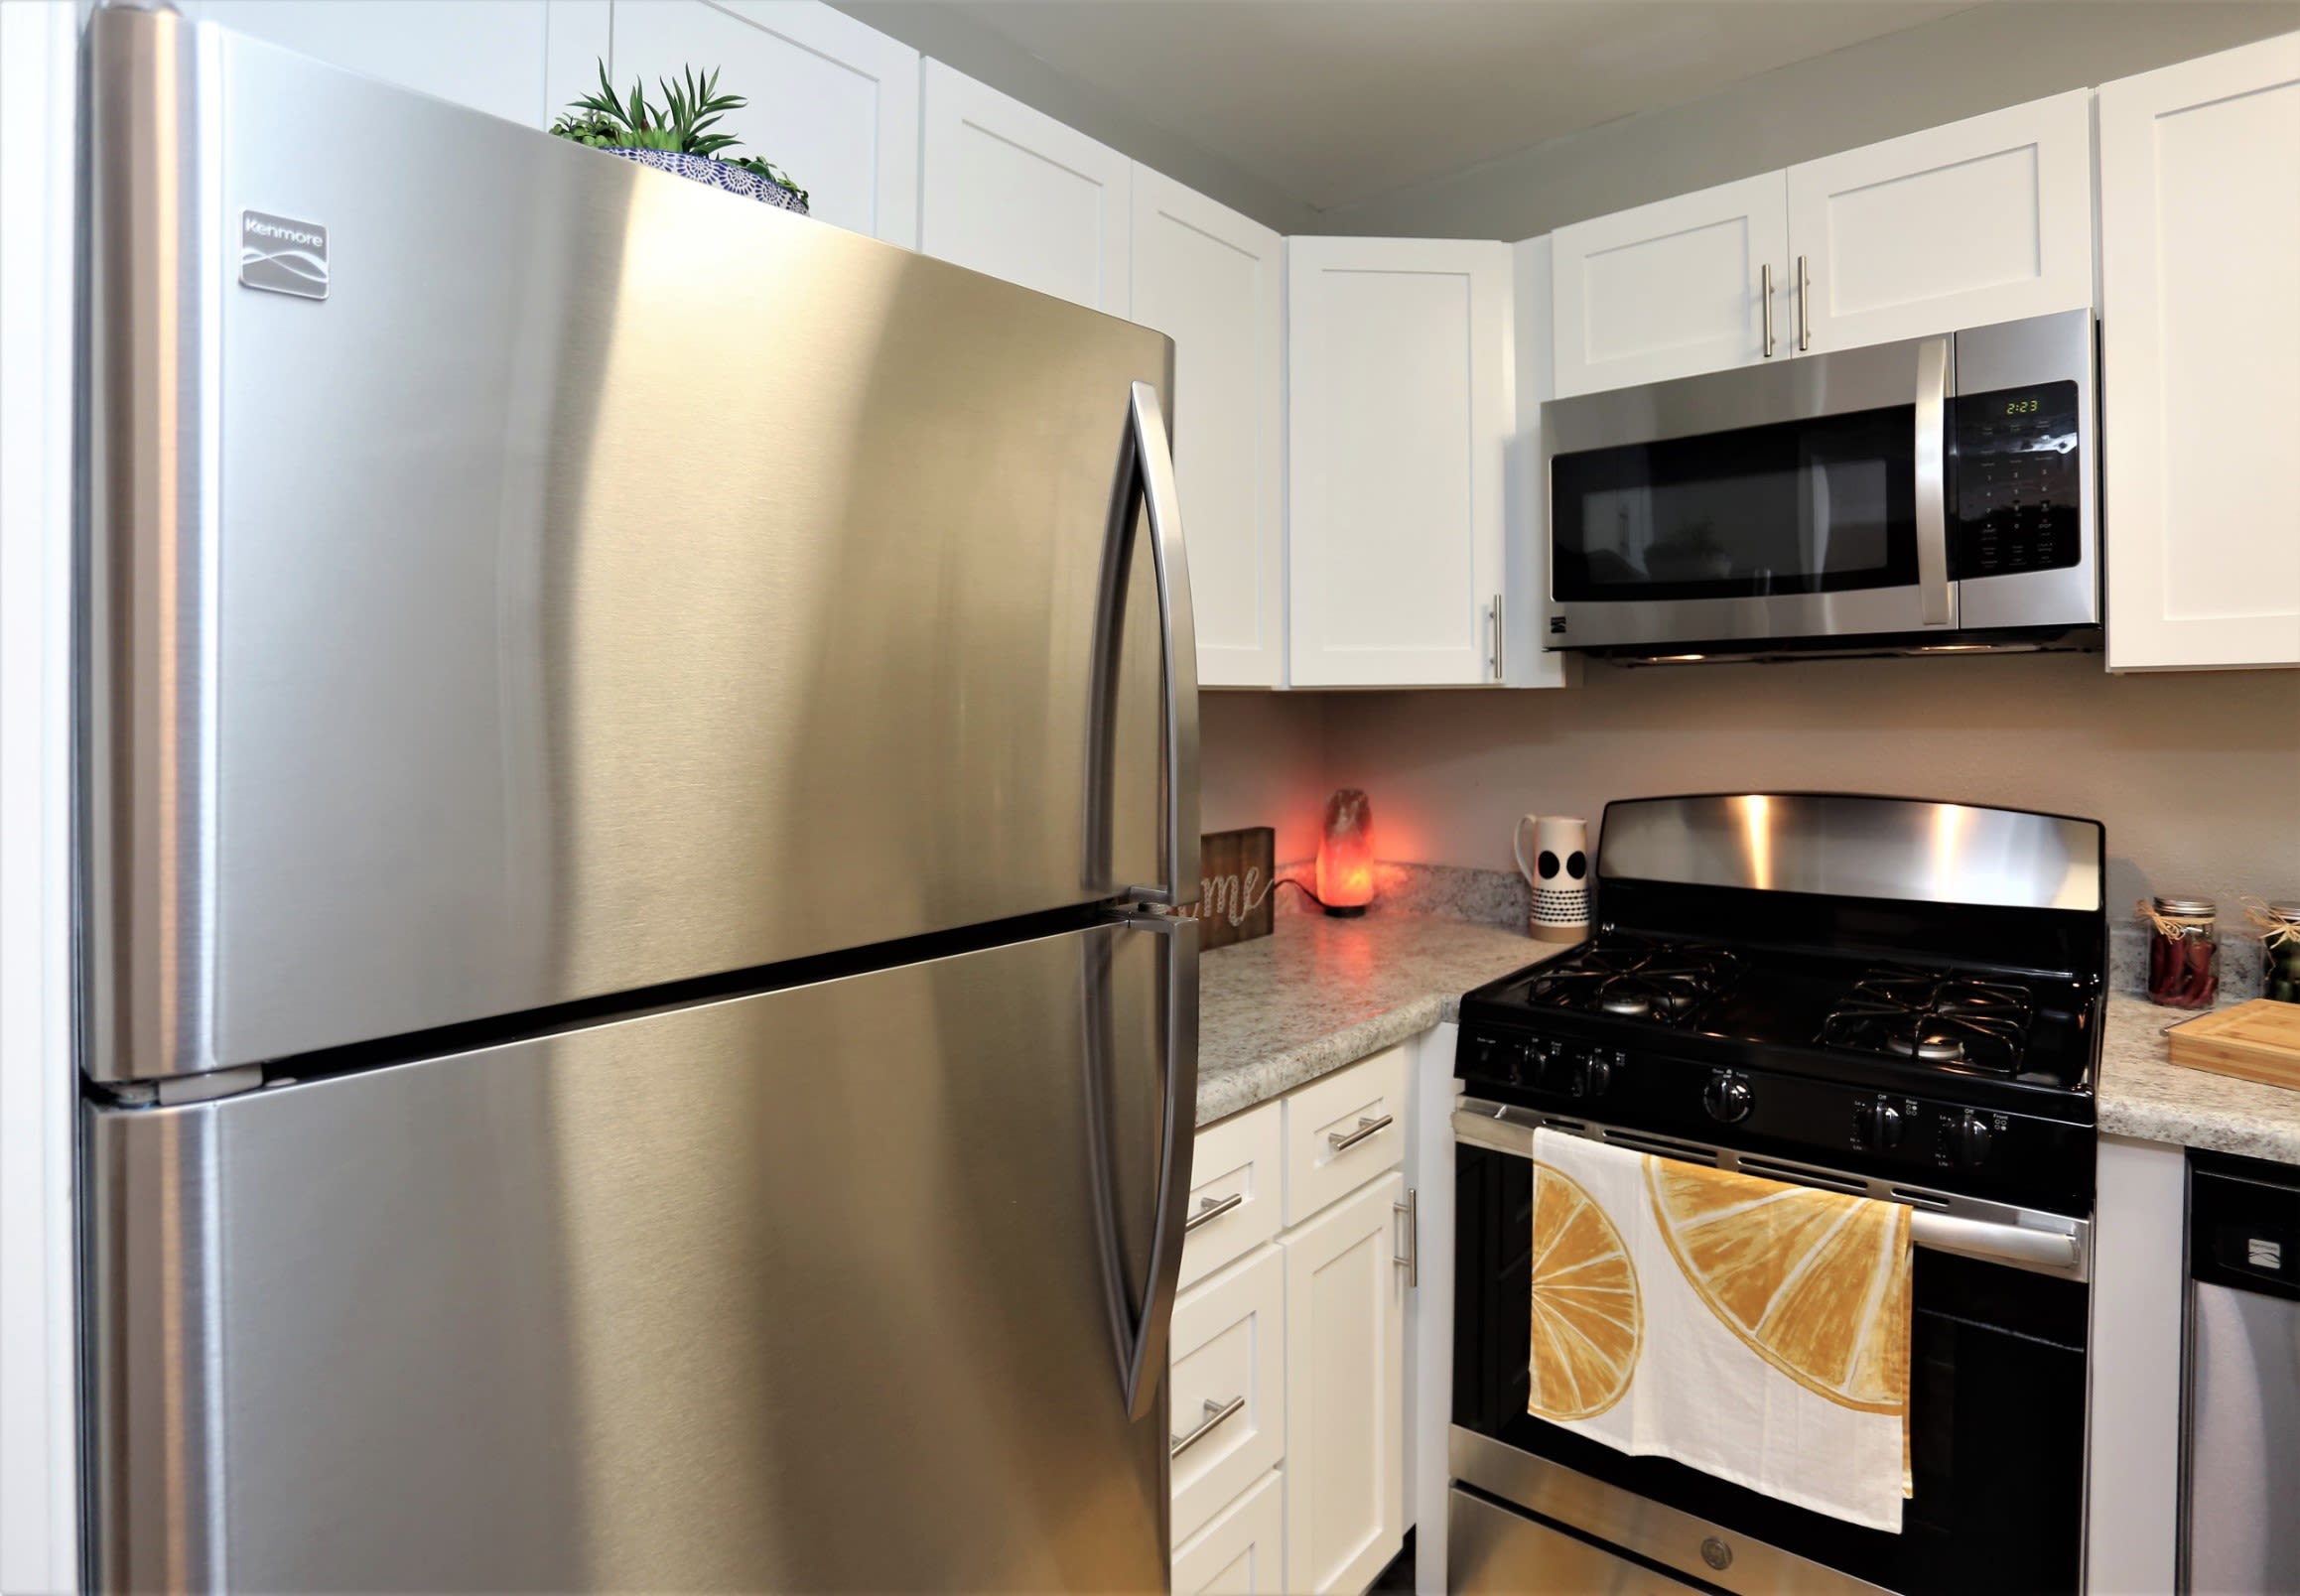 Stainless Appliances at Greensboro, NC Apartments